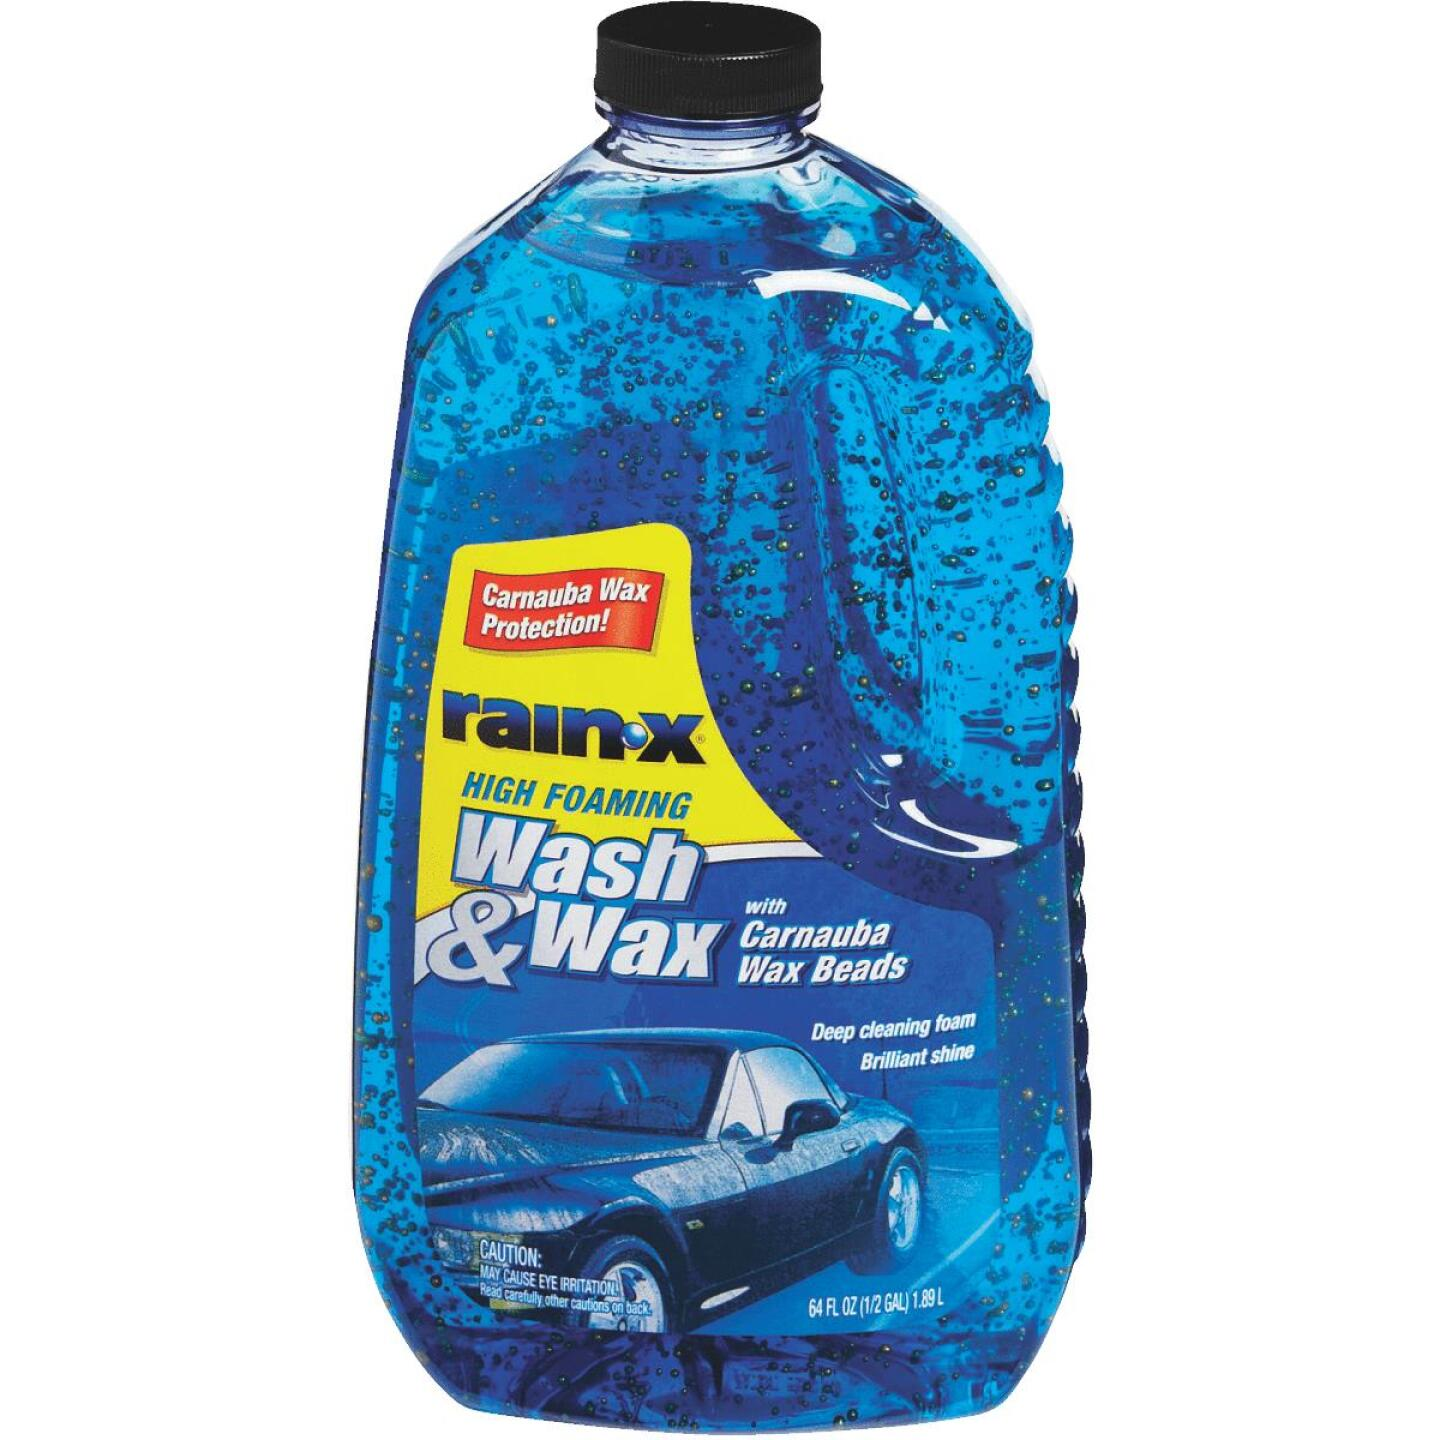 RAIN-X 64 Oz. Liquid High Foaming Car Wash & Wax w/Carnauba Wax Image 1